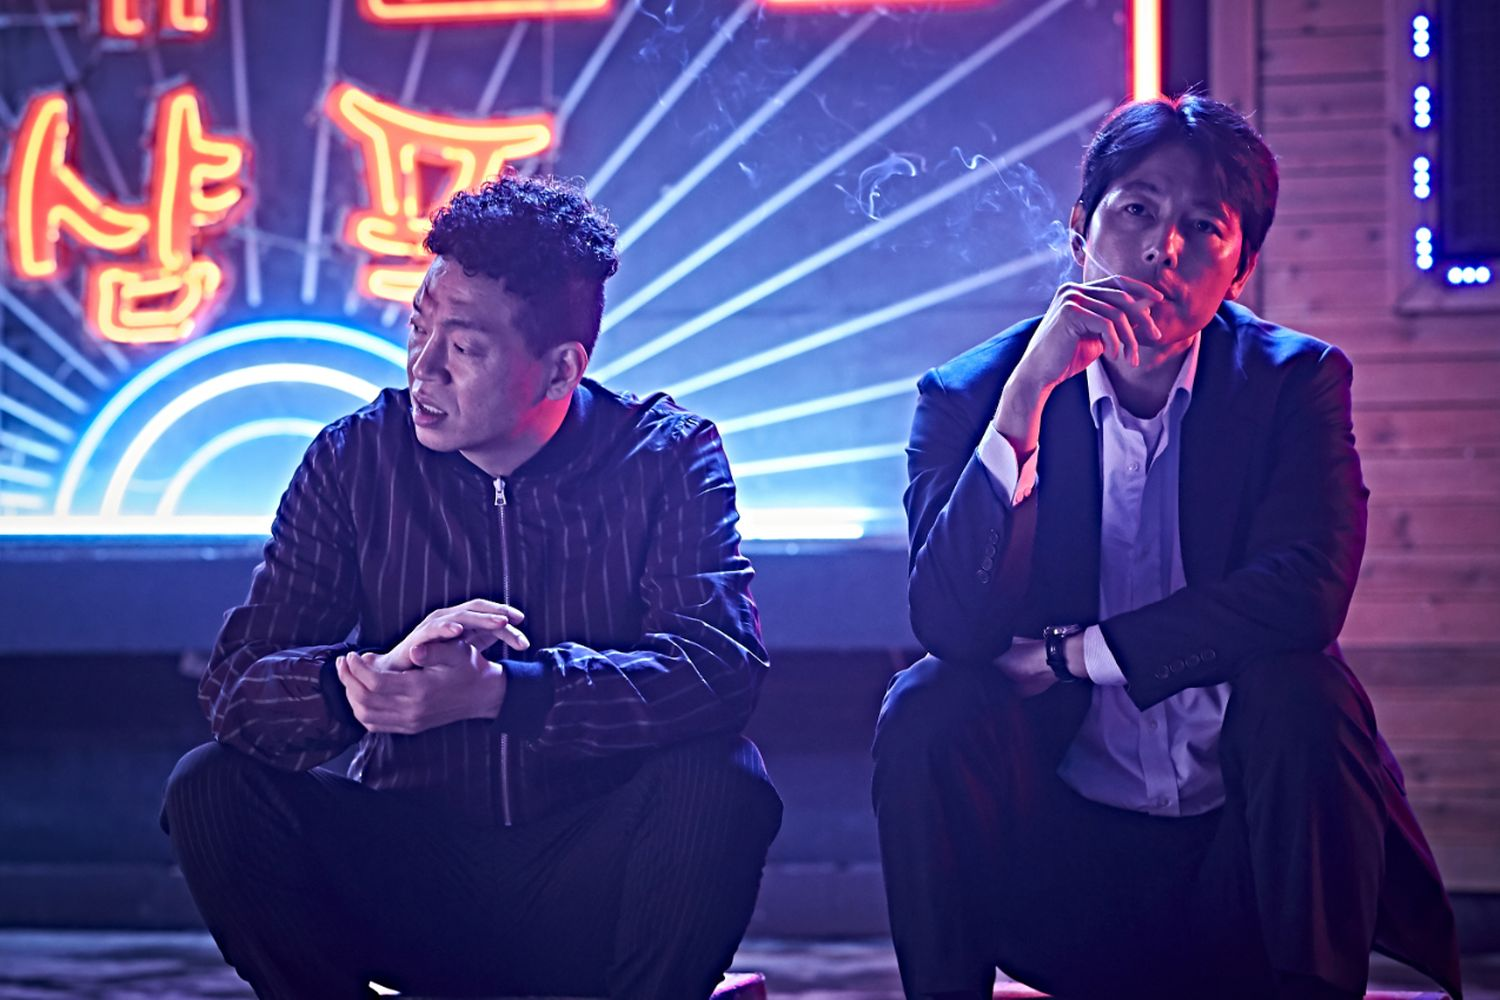 Park Ji-hwan and Jung Woo-sung in BEASTS CLAWING AT STRAWS (Blue Finch Film Releasing)